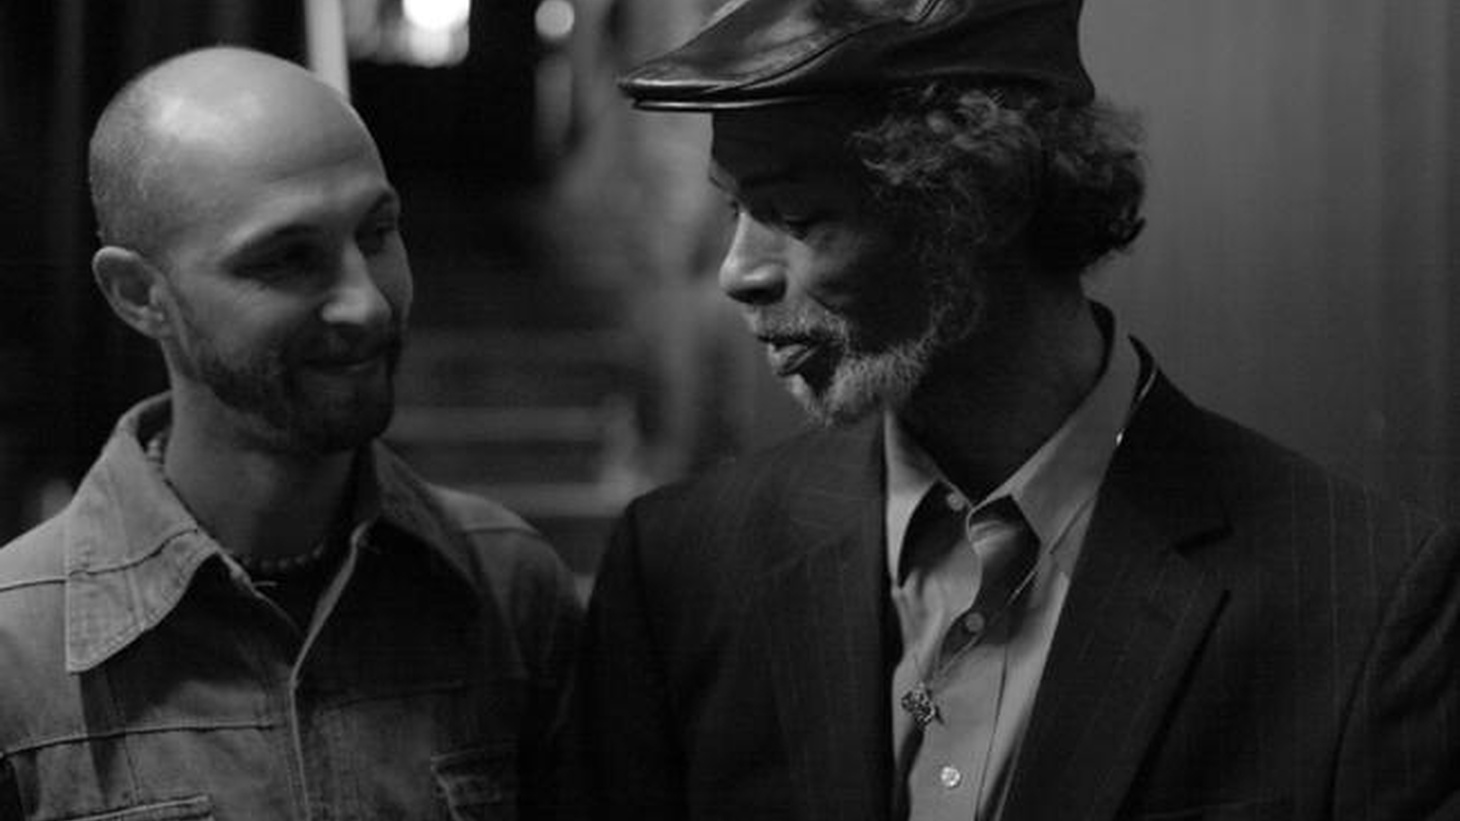 Moved by the passing of songwriter/poet Gil Scott Heron, KCRW DJ Jeremy Sole put together 3-hours of originals, collaborations, remixes, interviews, poems, and music made in tribute to Gil from around the world .